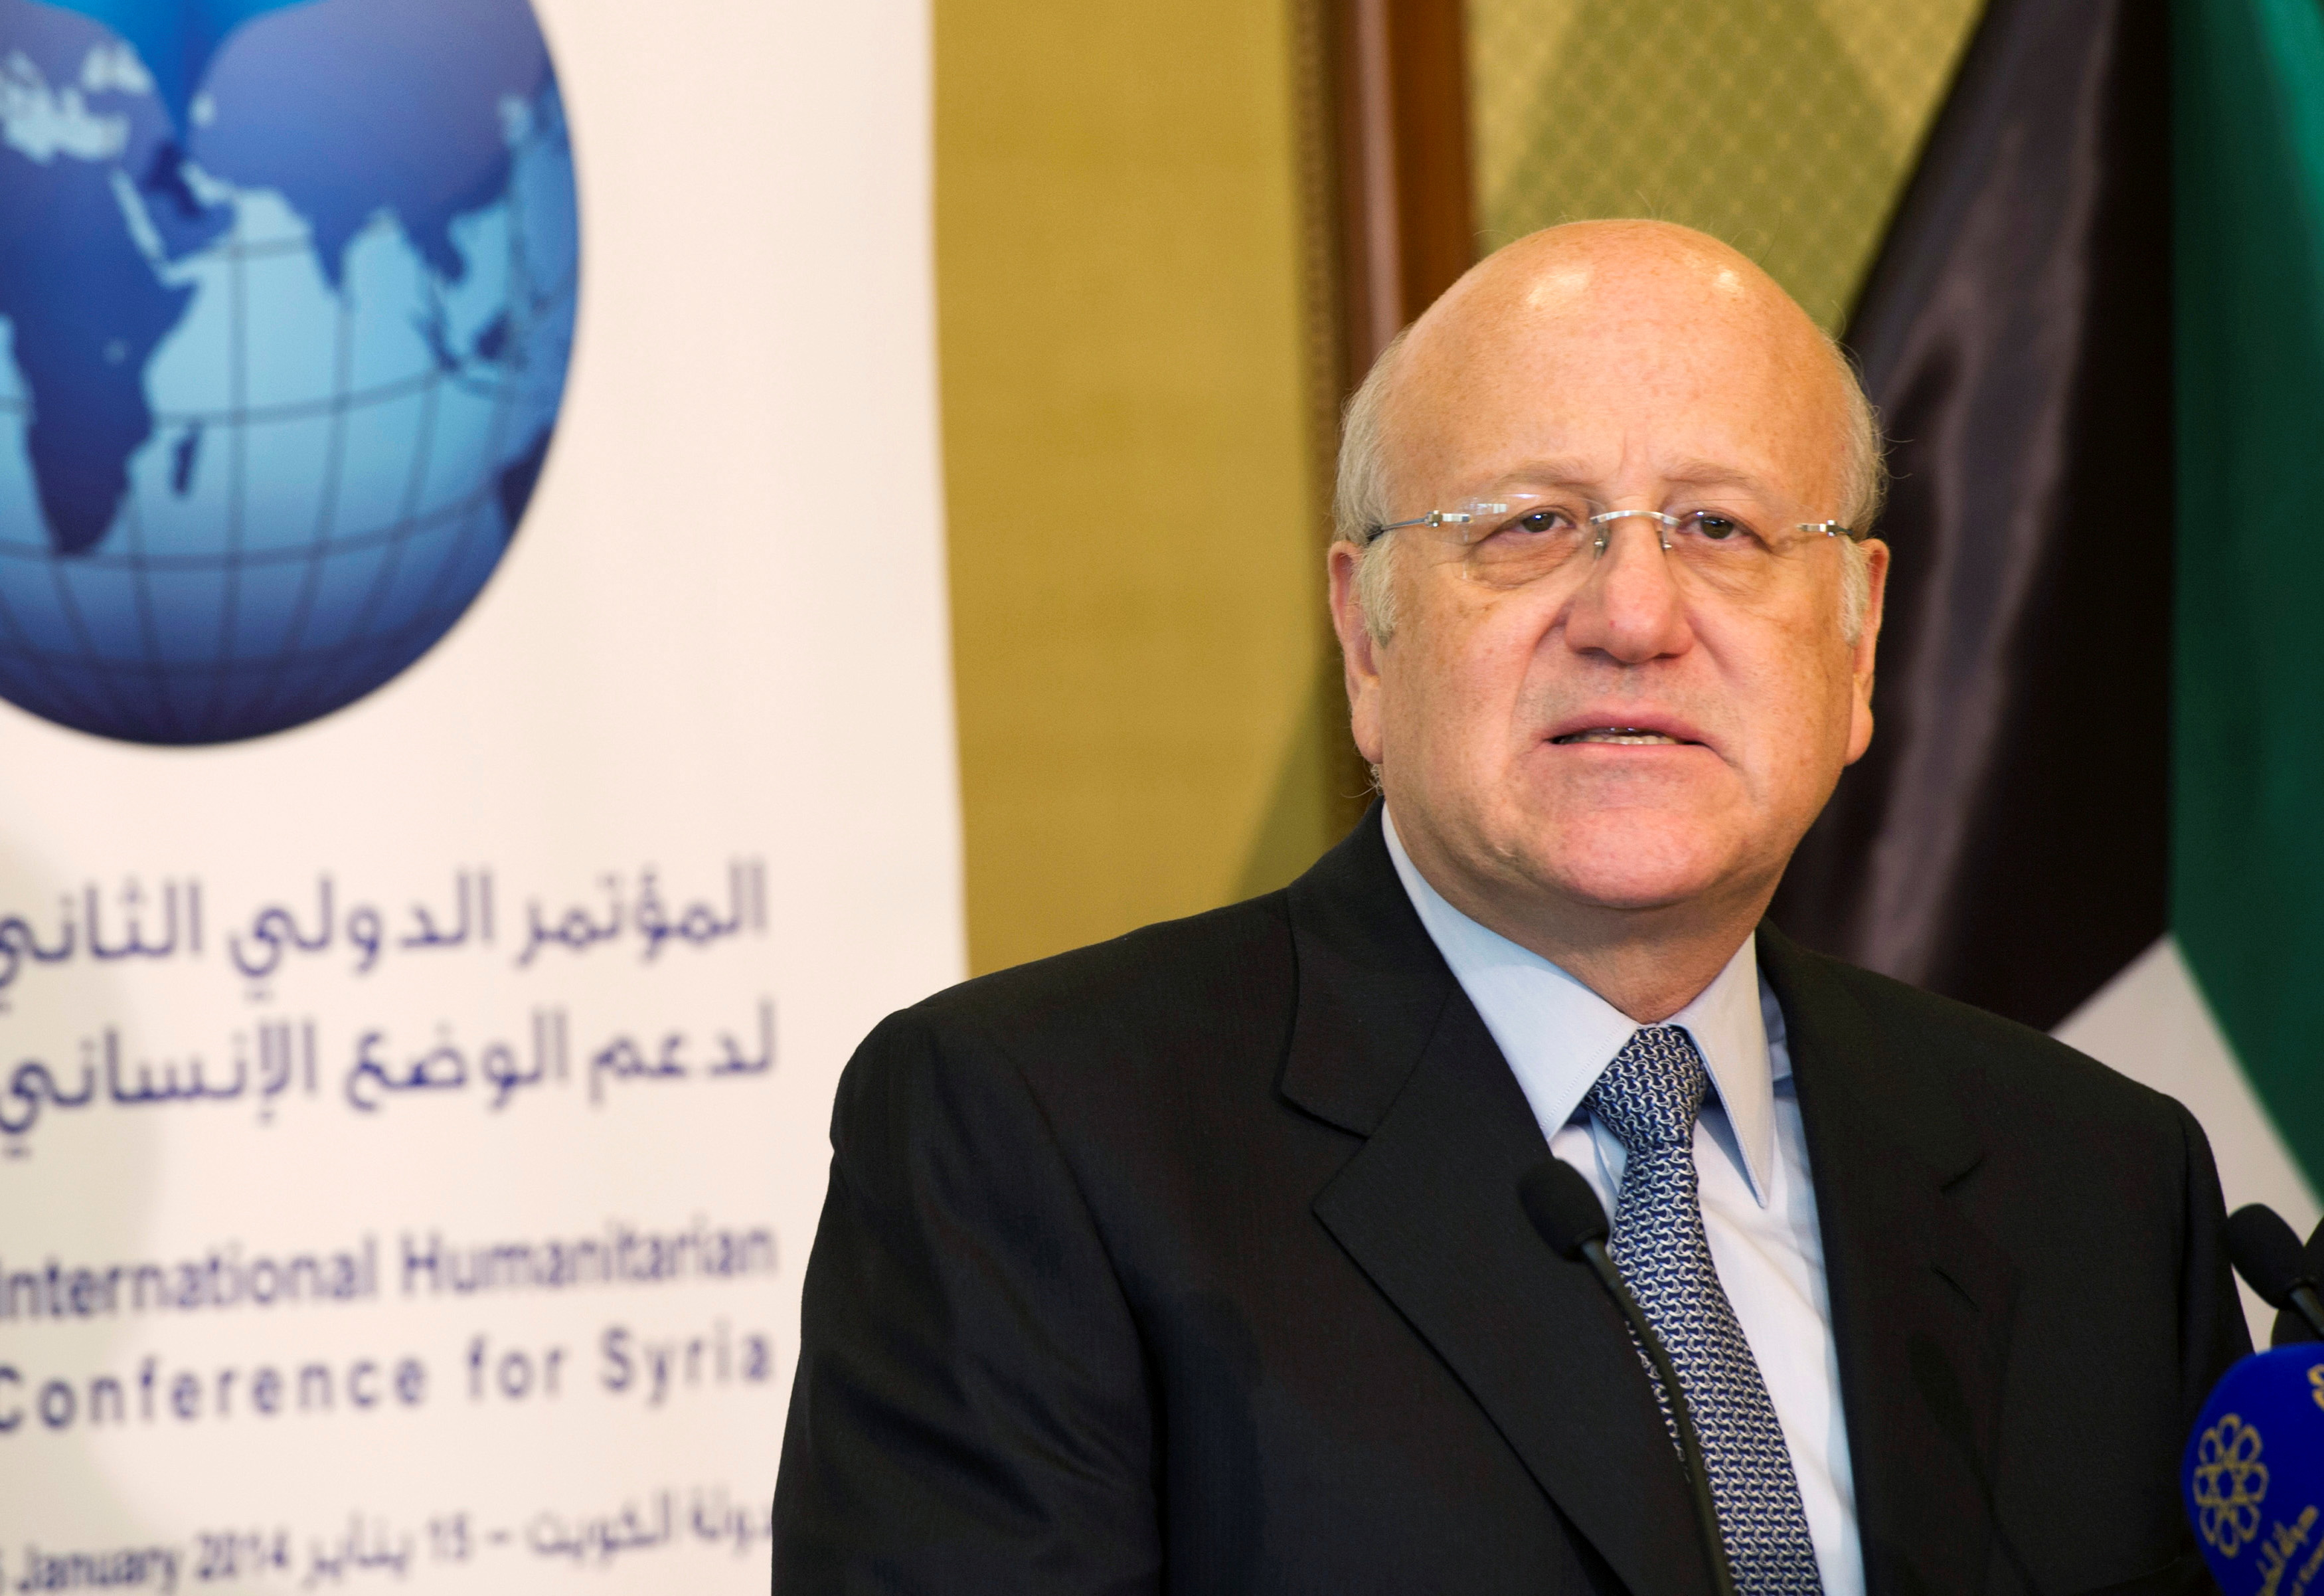 Lebanon's caretaker Prime Minister Najib Mikati attends a news conference at the opening session of the Syrian Donors Conference at Bayan Palace Liberation Hall in Kuwait City January 15, 2014.  REUTERS/Stephanie McGehee